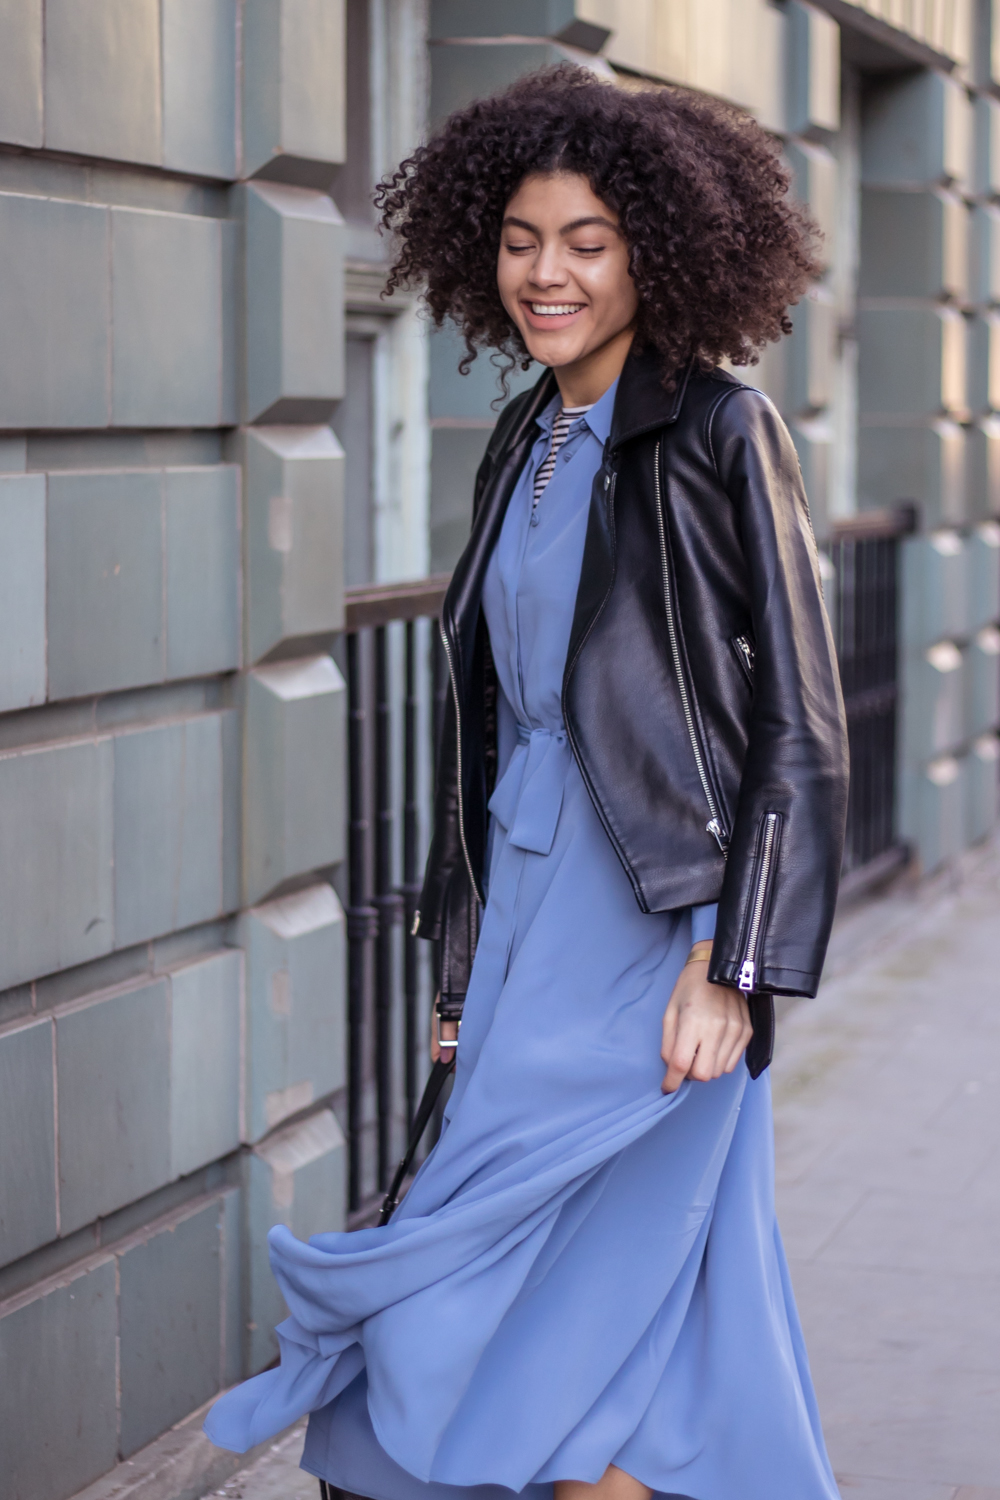 Blue Finery London shirt dress and faux leather biker jacket outfit